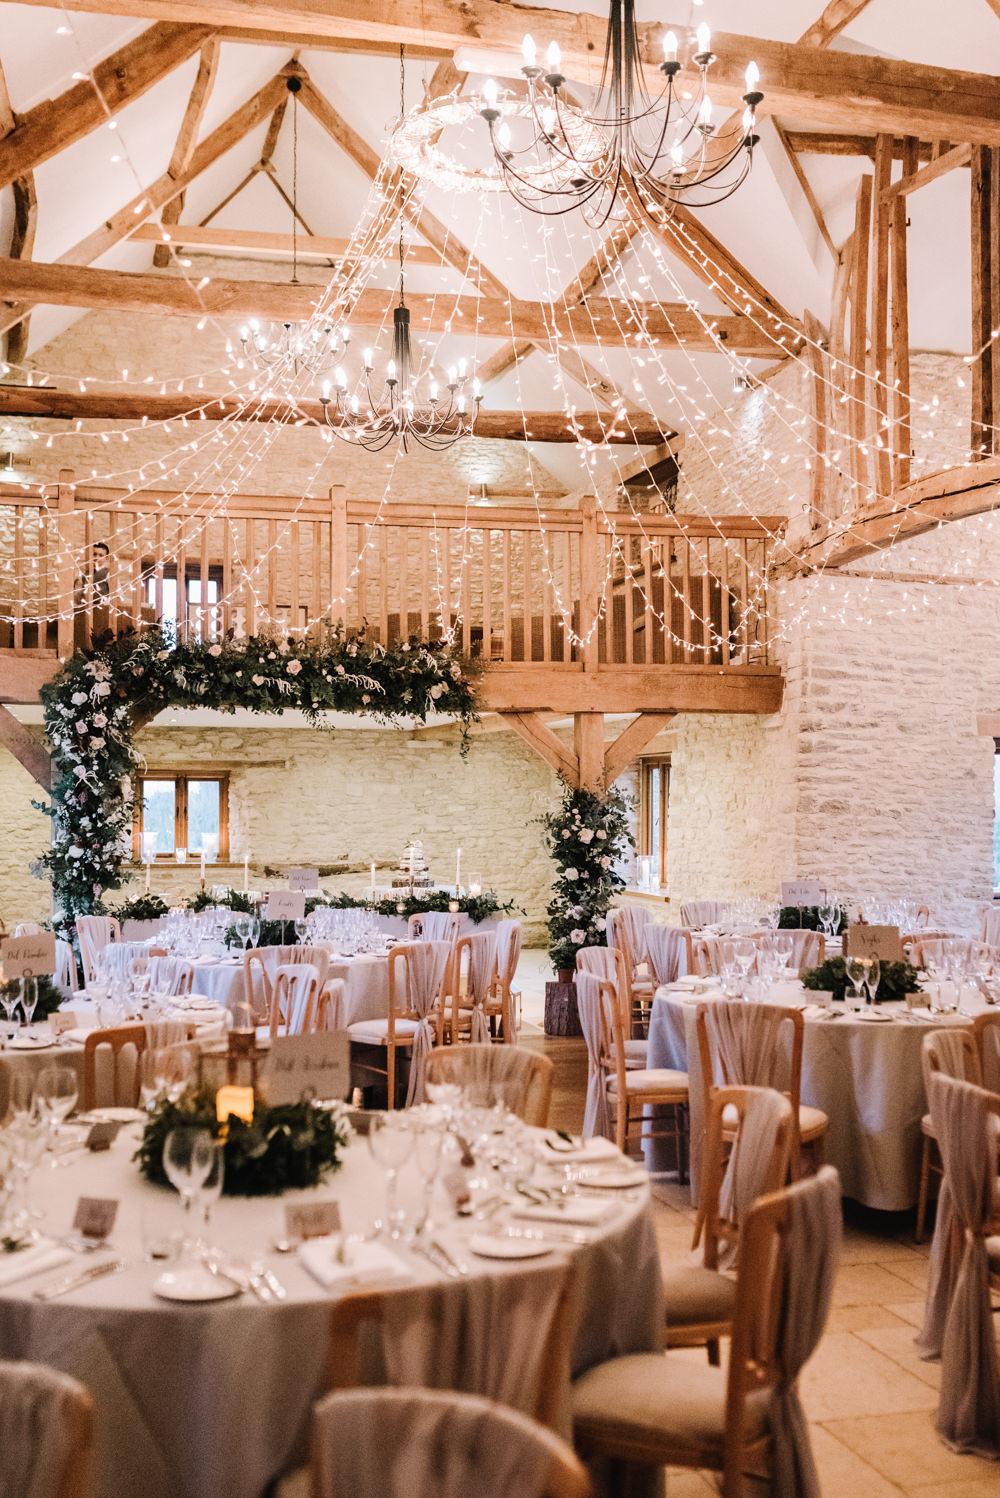 Flower Floral Arch Backdrop Decor Lanterns Greenery Foliage Candles Fern Pink Red Fairy Lights Kingscote Barn Wedding Oobaloos Photography